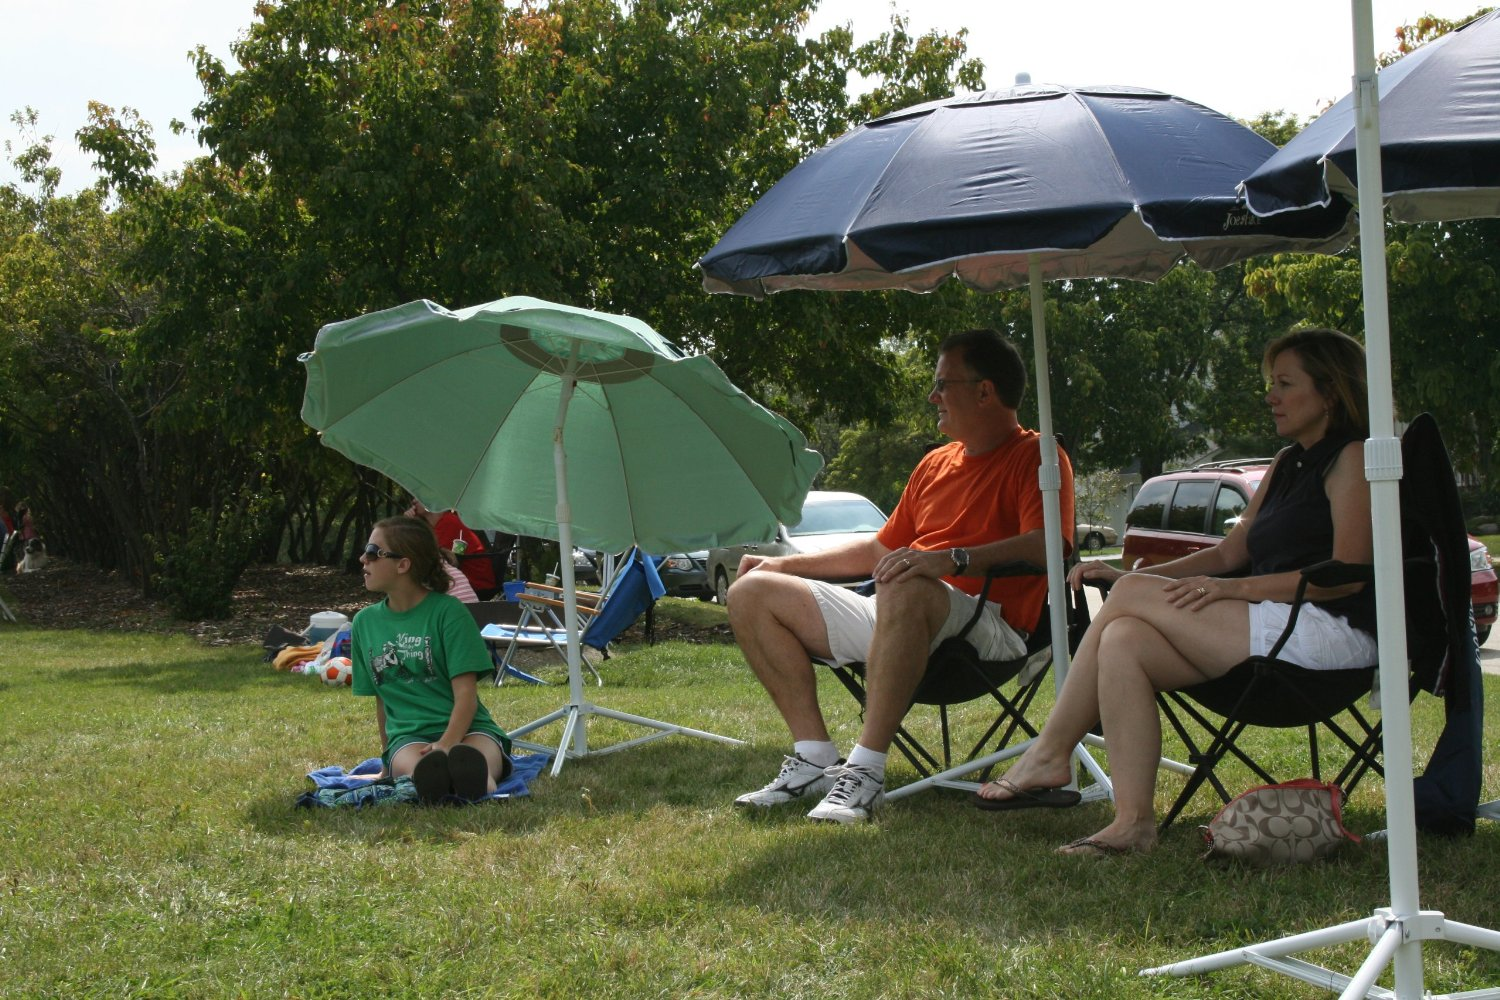 Portable Beach Chair With Umbrella Jazzy Power Battery Replacement Joe Shade Sun Umbrellas Images